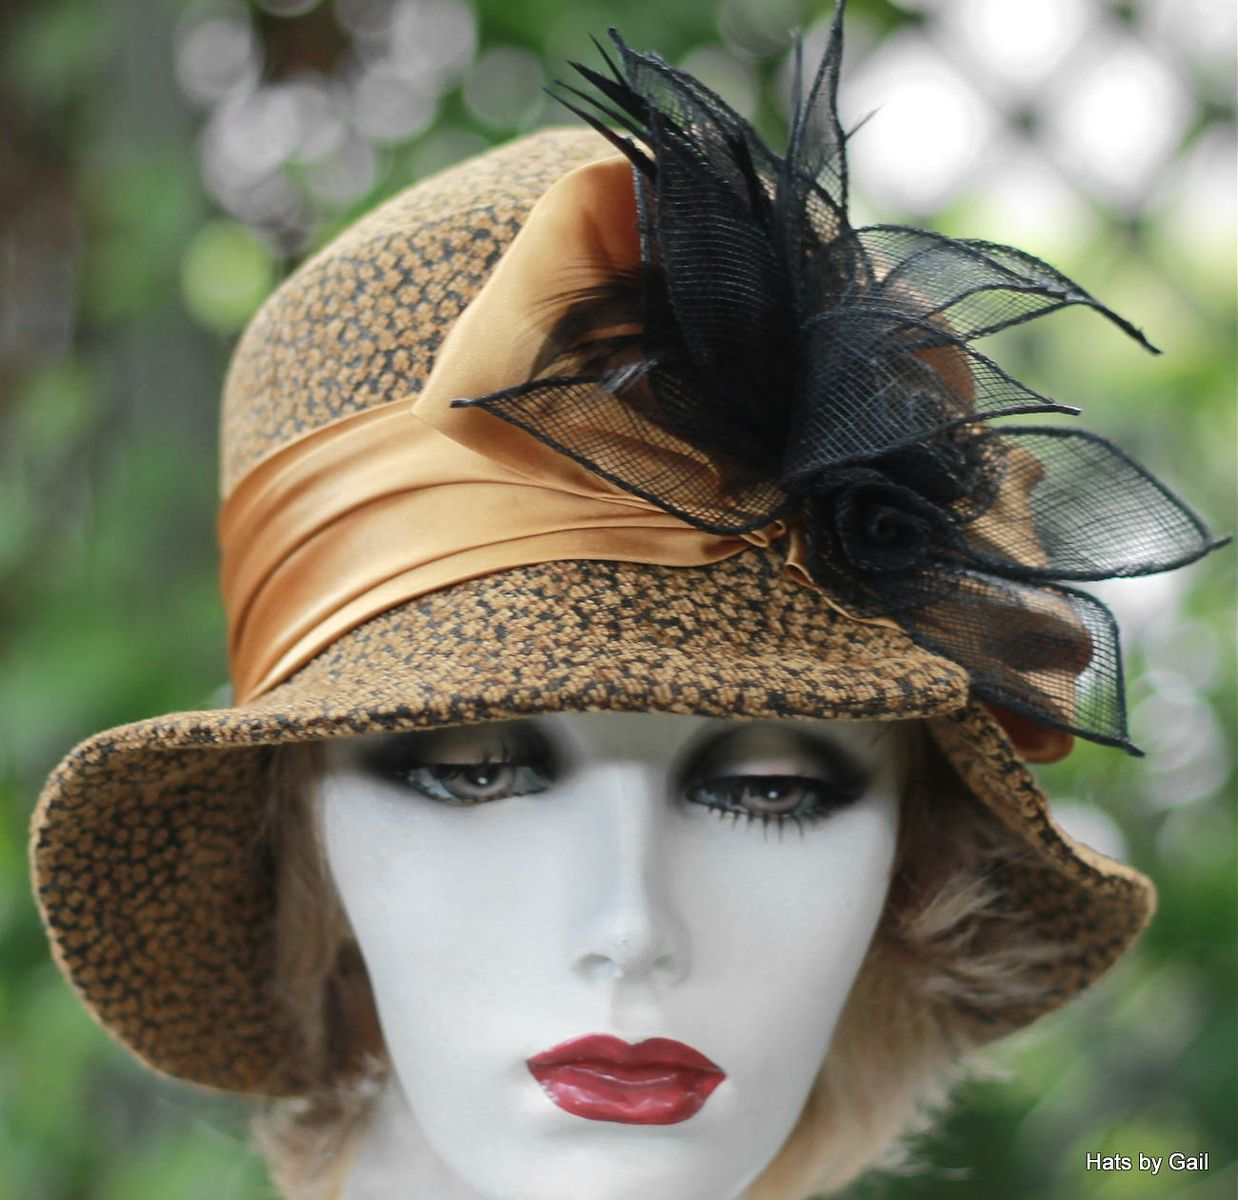 c0c0e042469 Buy a Hand Made Chic Couture 1920 S Style Women s Cloche Hat